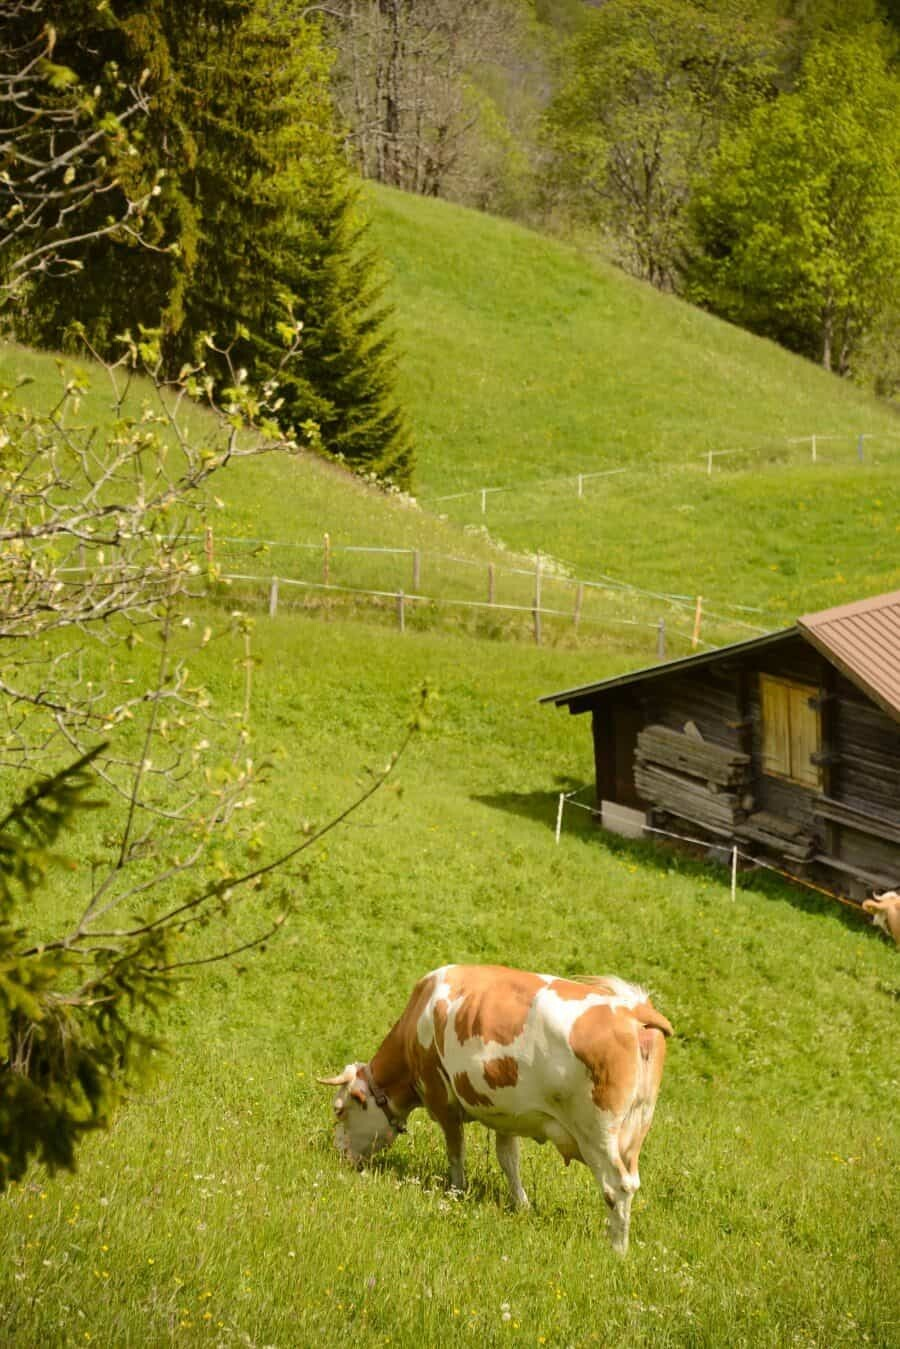 jungfrau-travel-guide-wengen-lauterbrunnen-and-grindelwald-by-the-wandering-lens-71